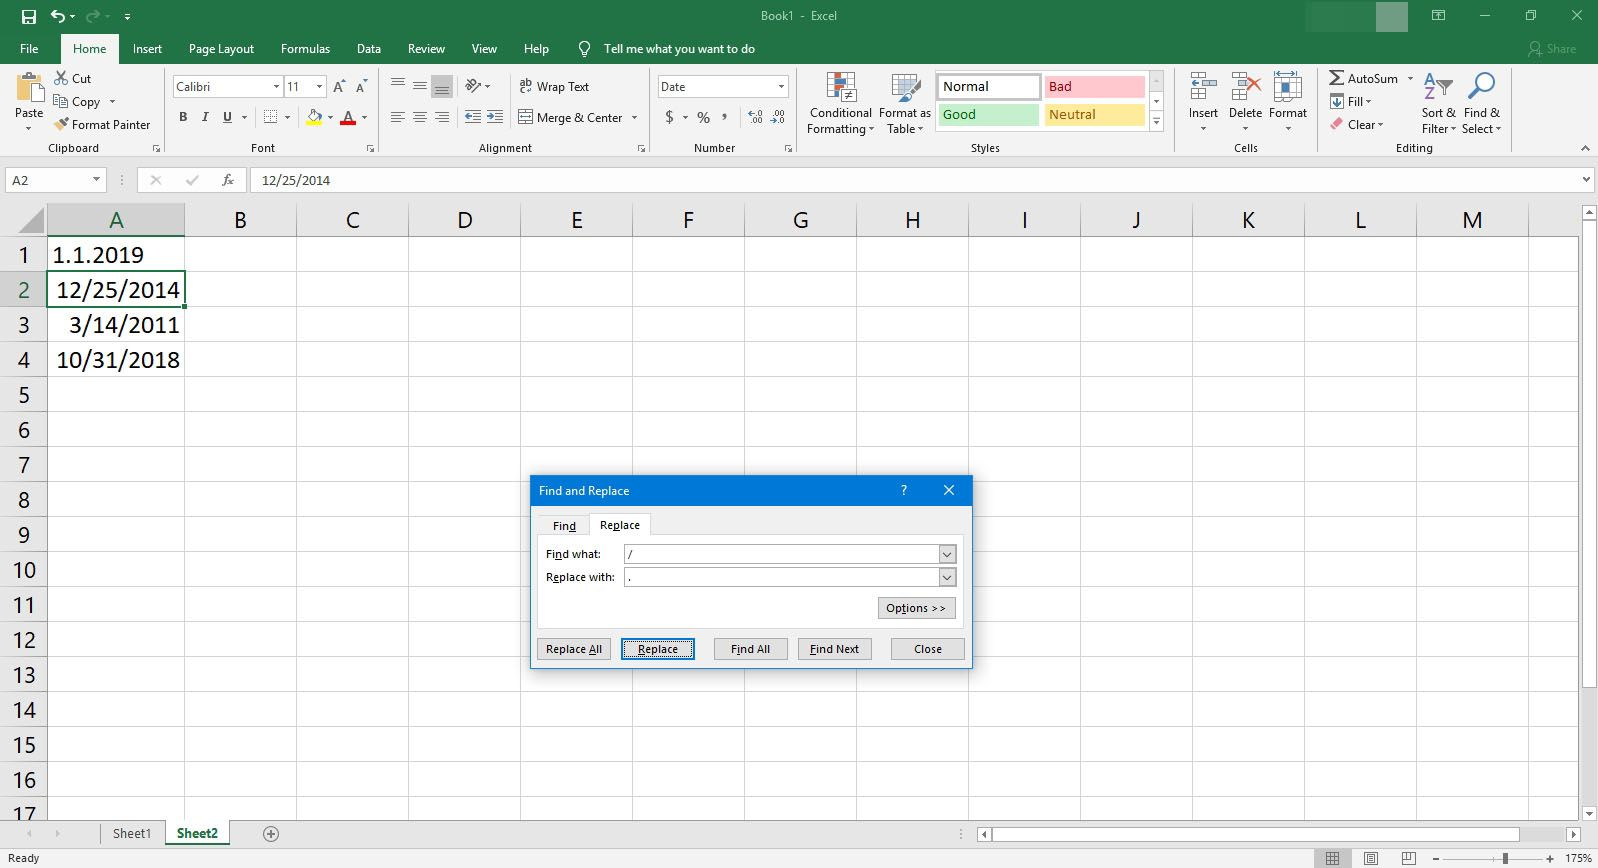 An example of using Find and Replace in Excel.